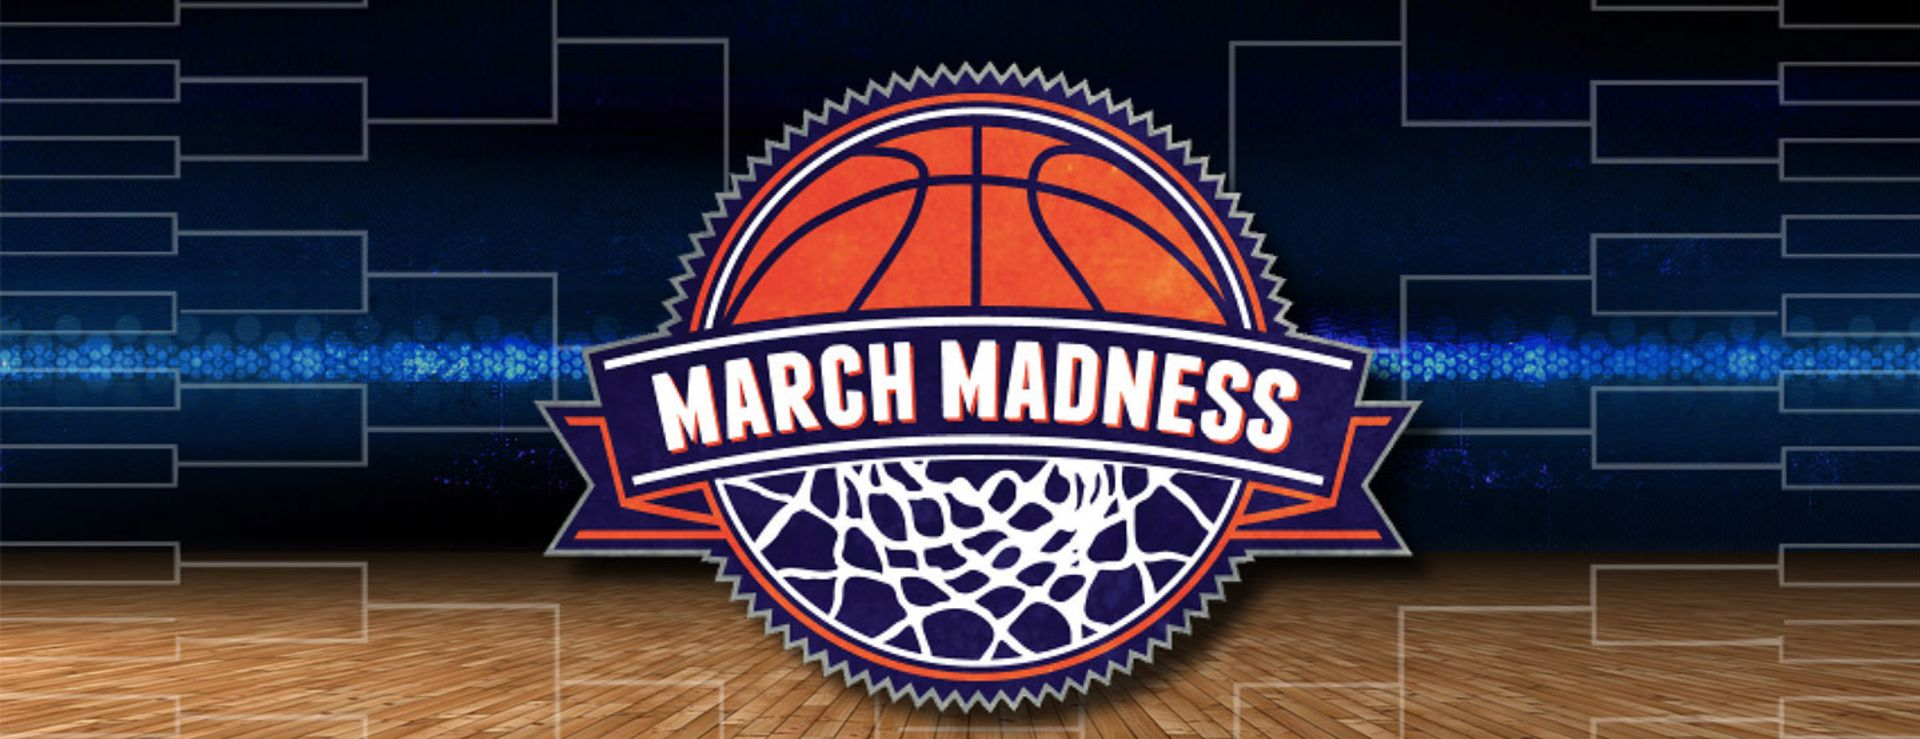 WELCOME TO MARCH MADNESS!!!